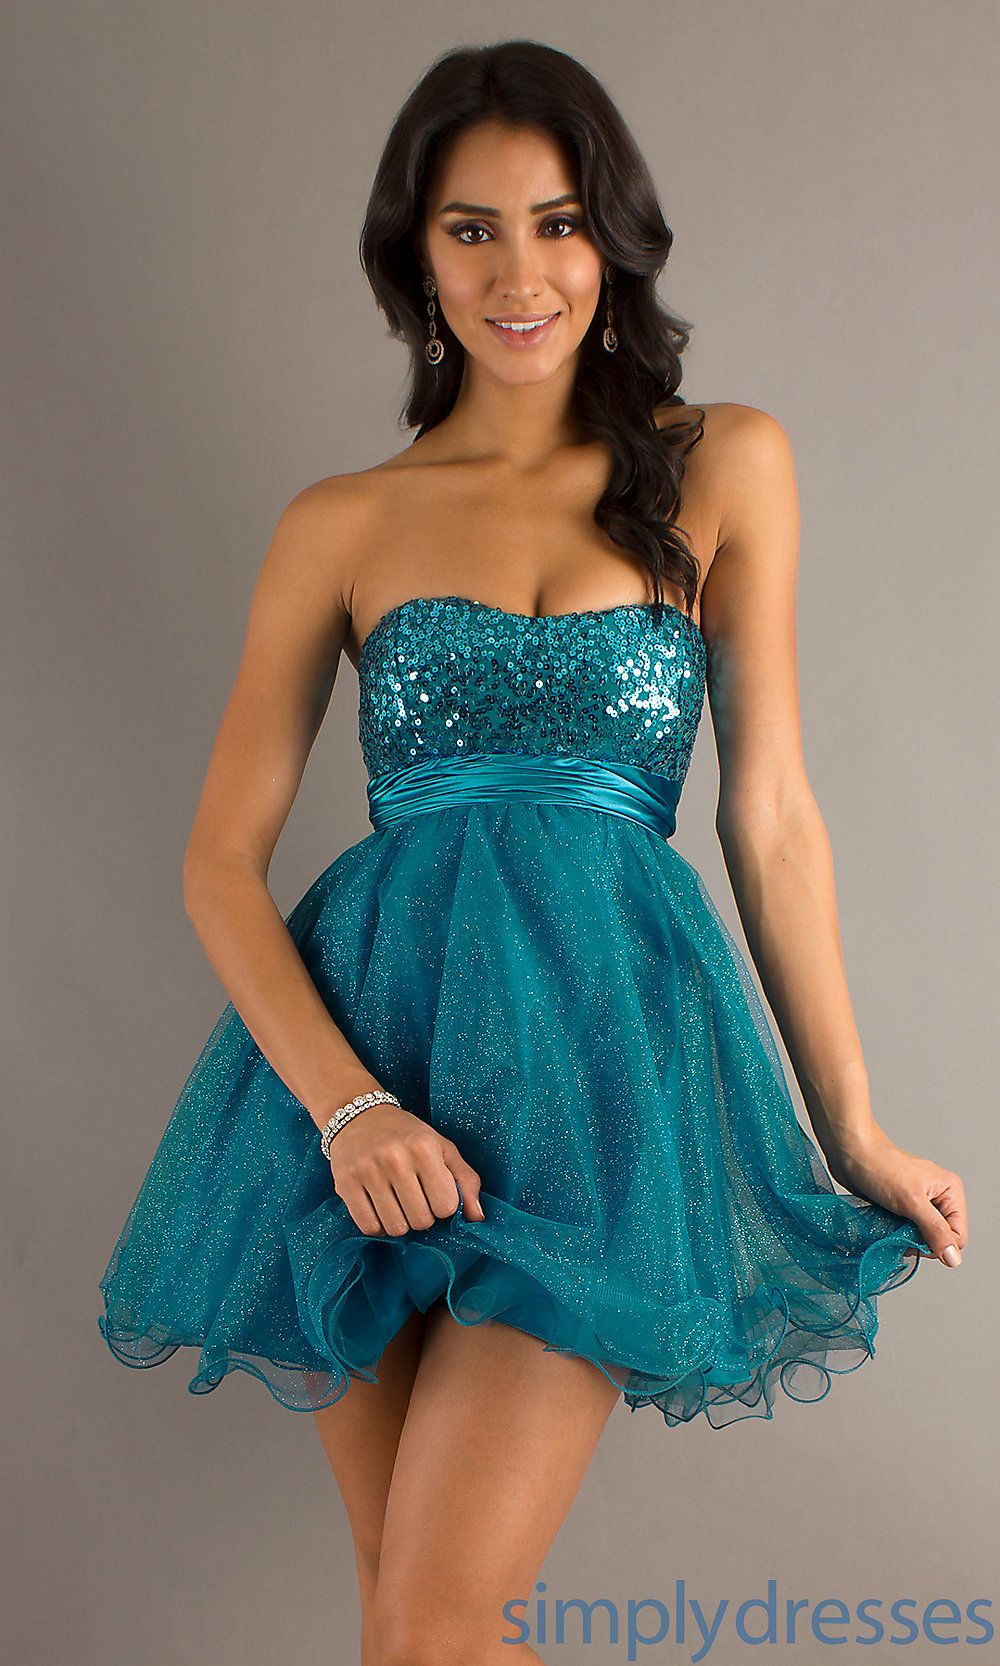 Teal bridesmaid dresses adorable in short dresses white short